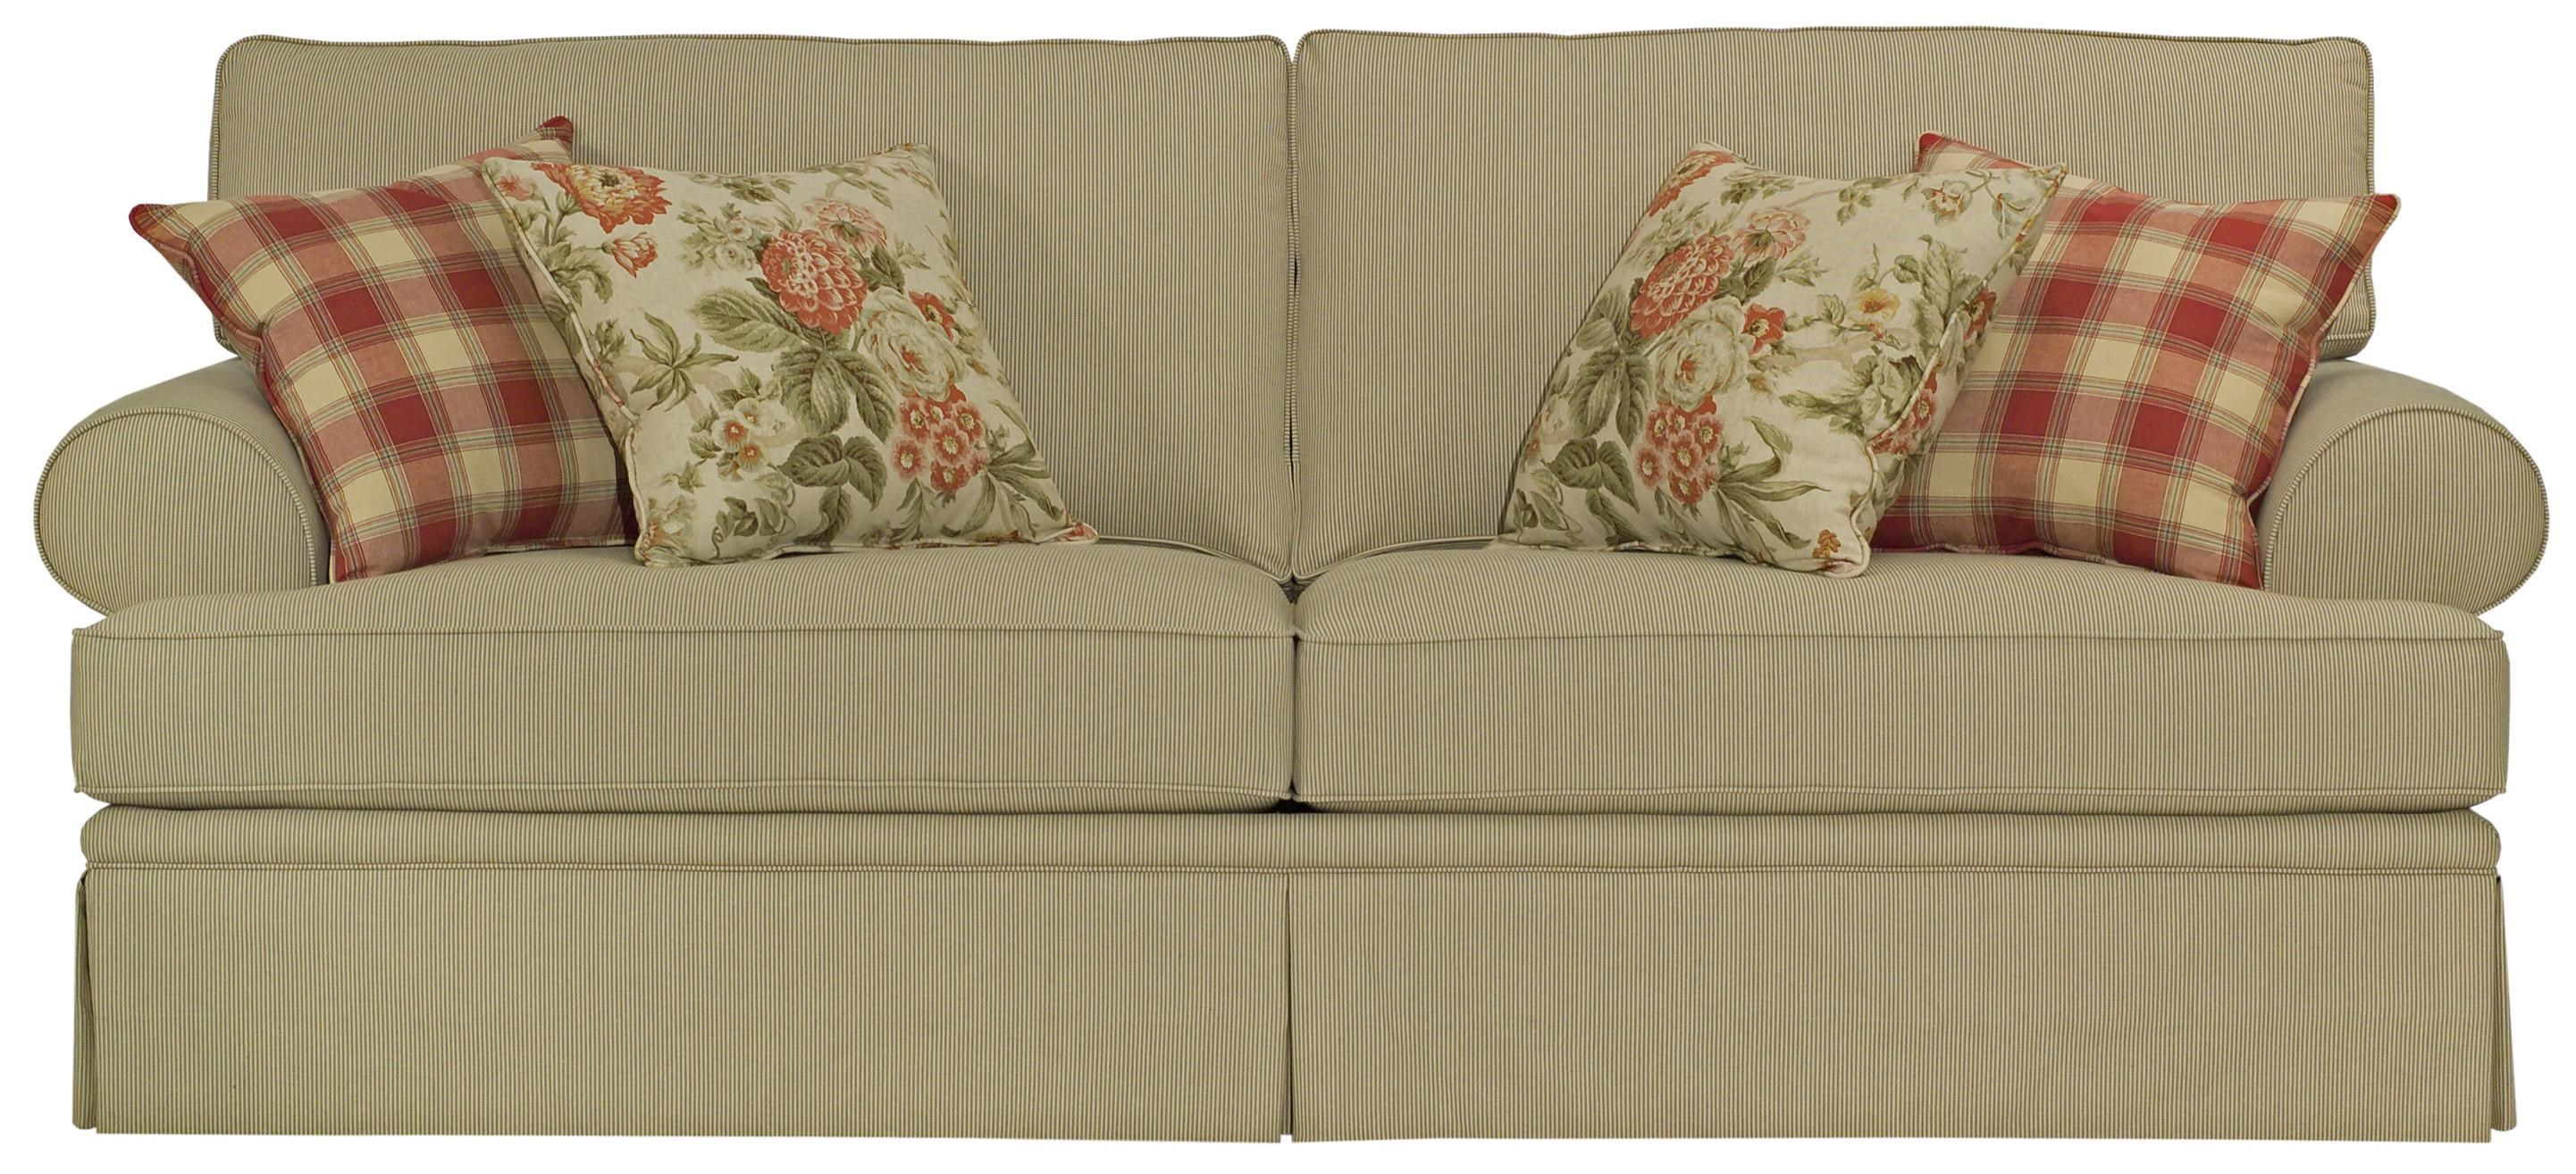 Awesome Sofa Shown May Not Represent Exact Features Indicated ...